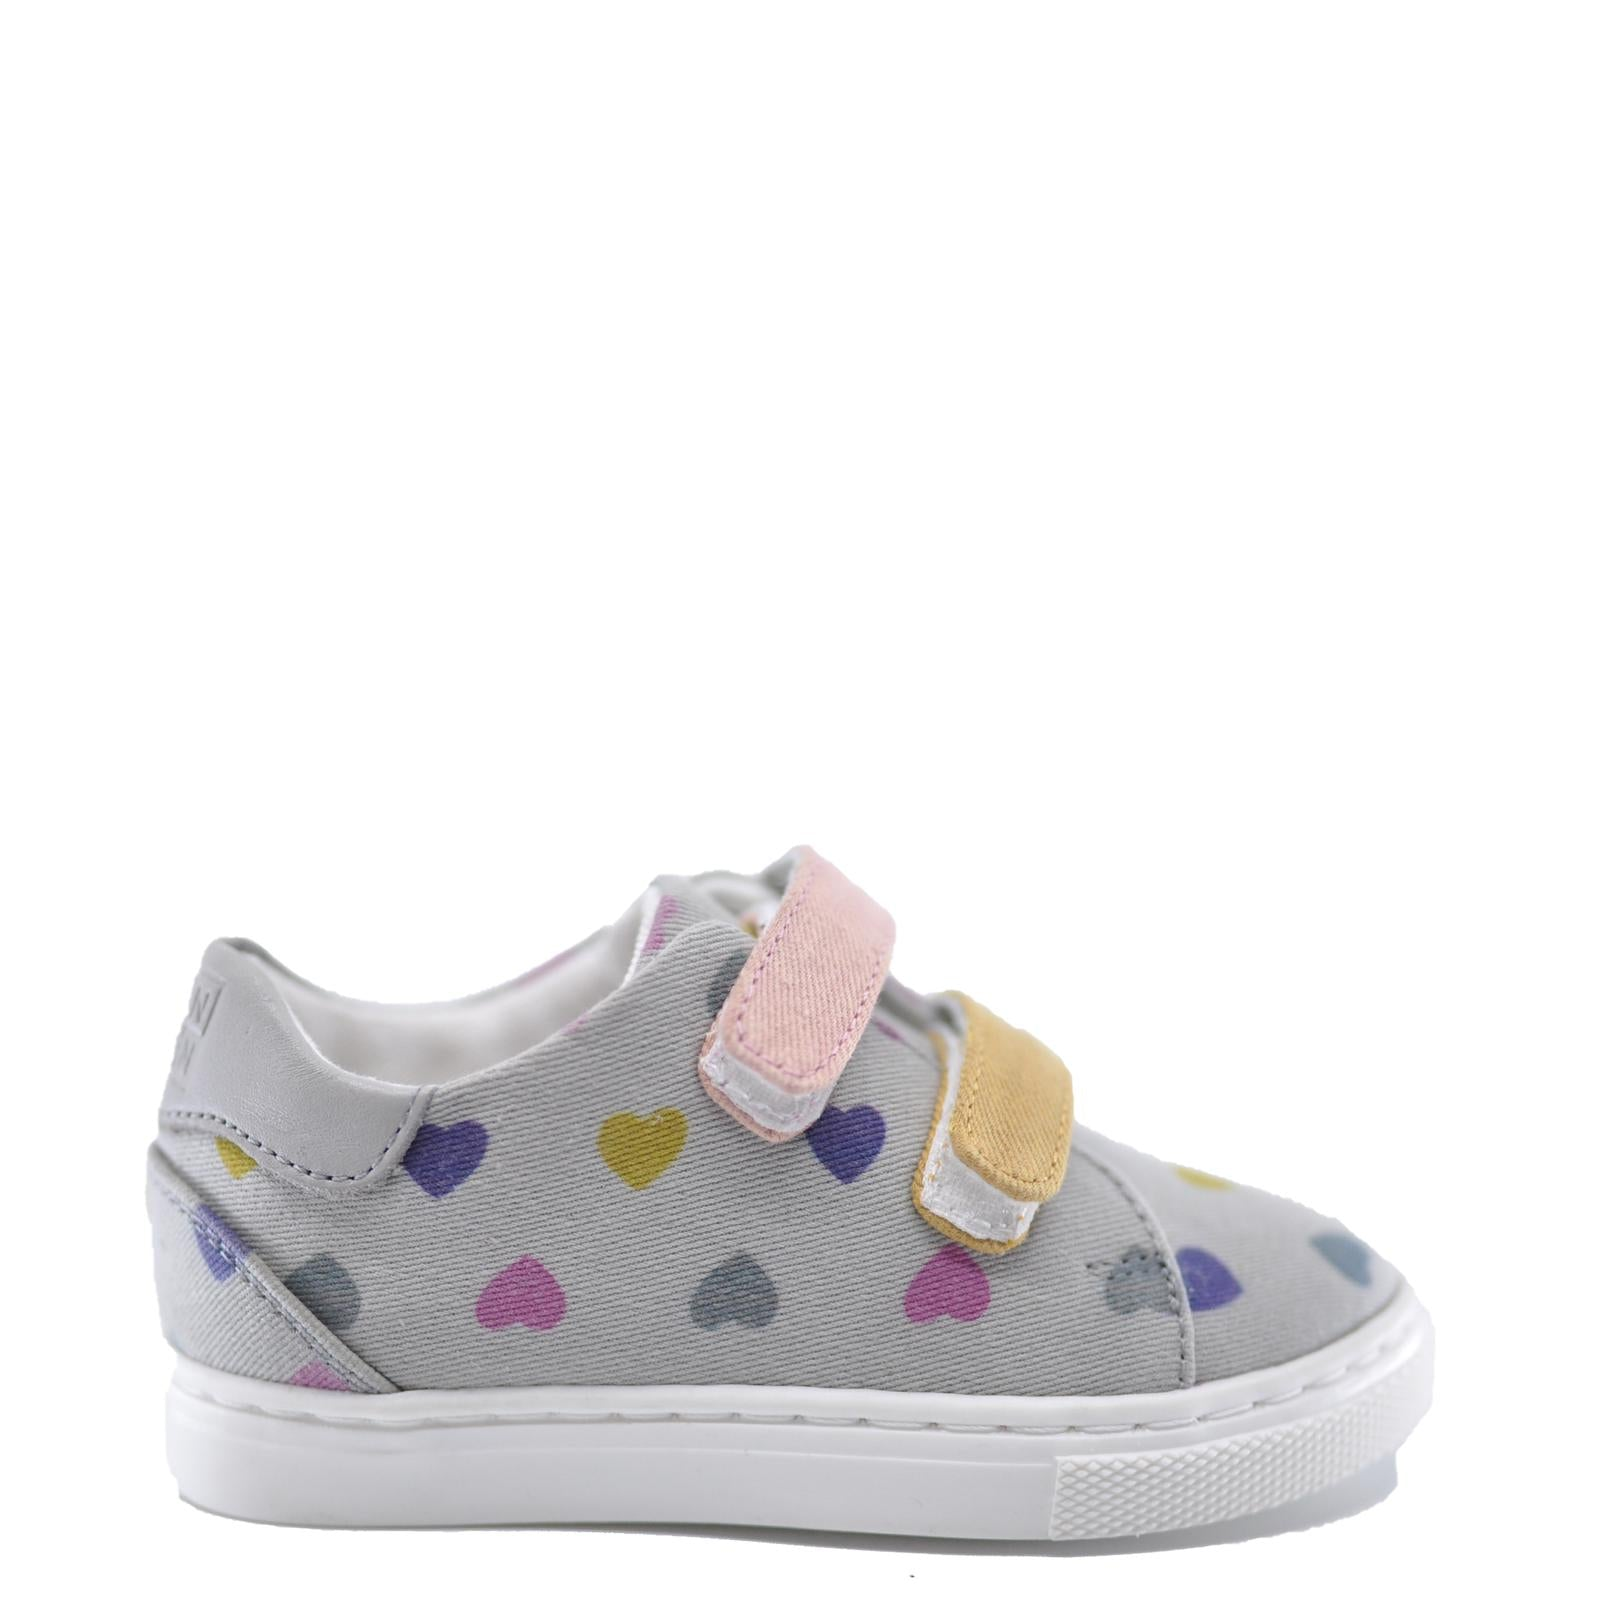 BONTON Multi Hearts Velcro Sneaker-Tassel Children Shoes